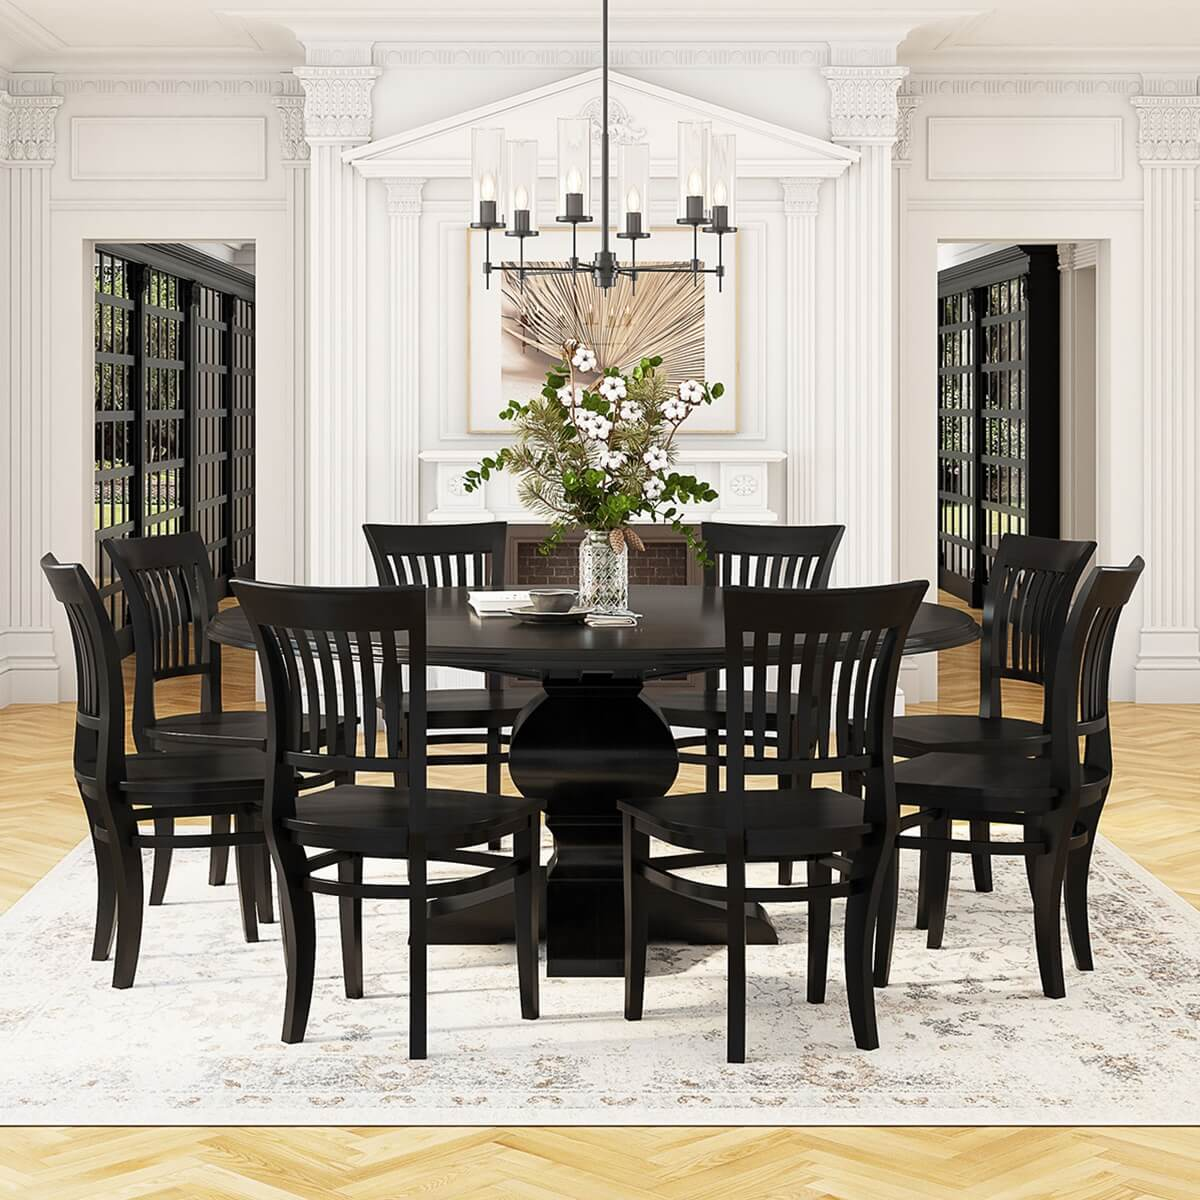 Rustic Solid Wood Large Round Dining Table Chair Set